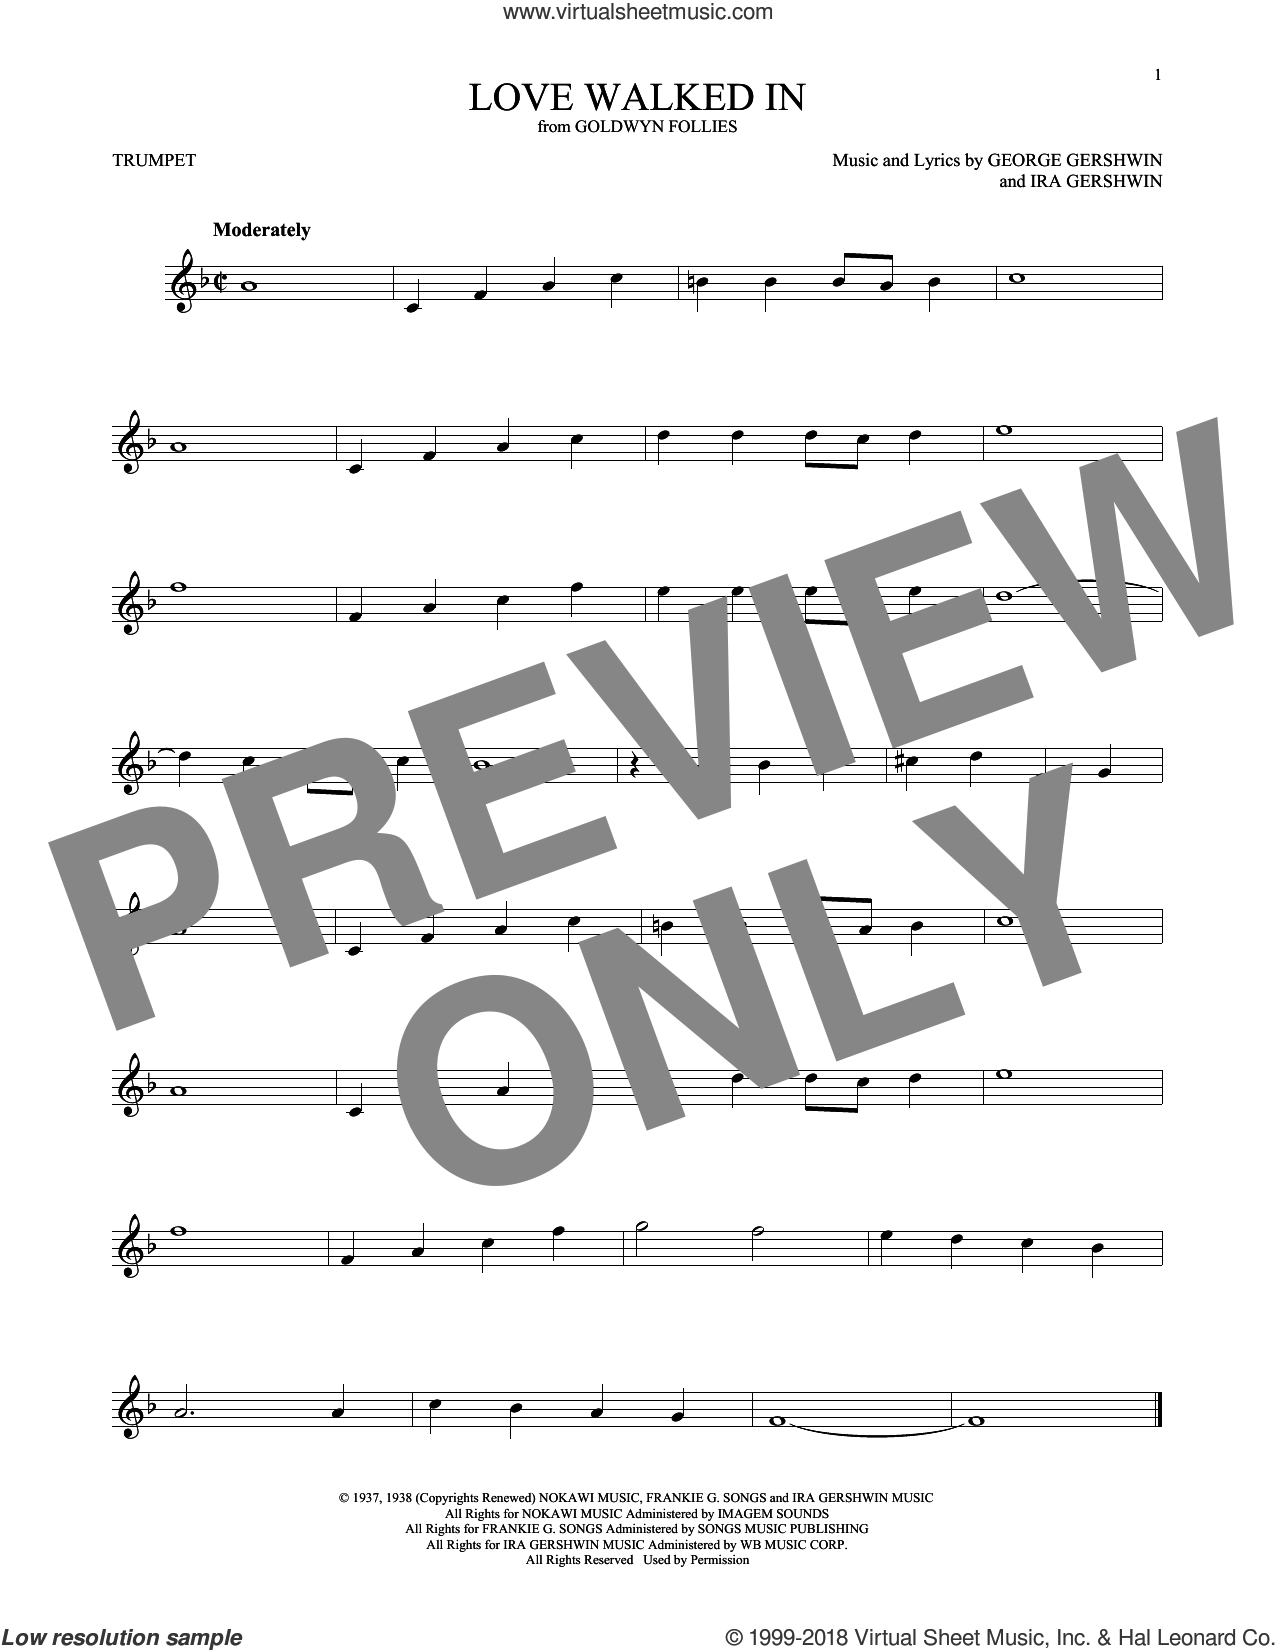 Love Walked In sheet music for trumpet solo by George Gershwin and Ira Gershwin, intermediate skill level